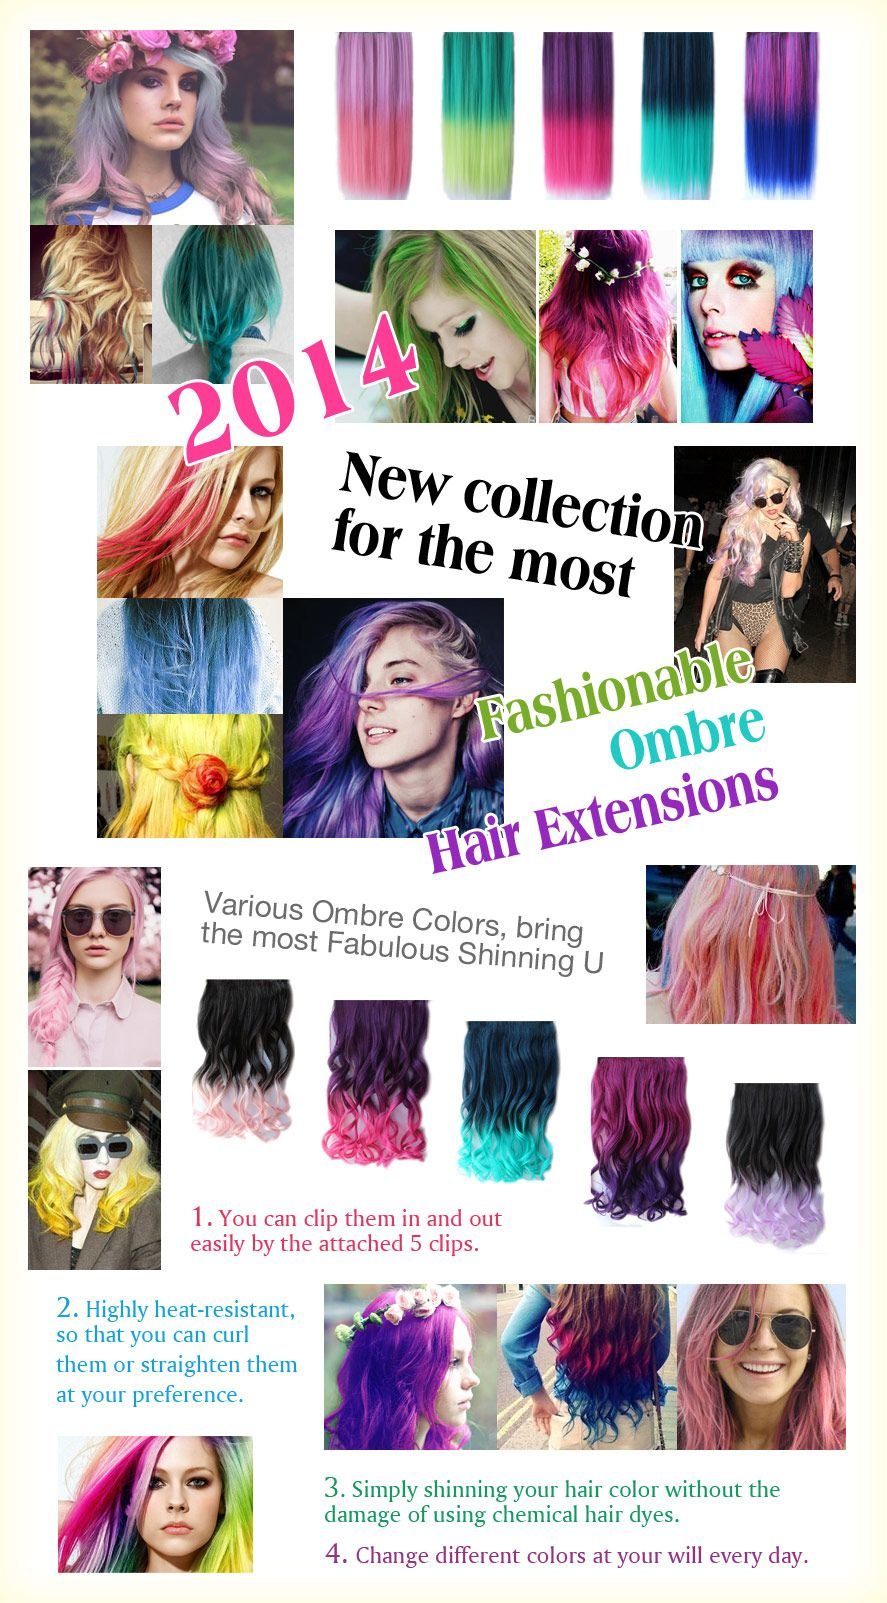 Pin By Laura Blankenship On Glitz Glam Pinterest Ombre Hair